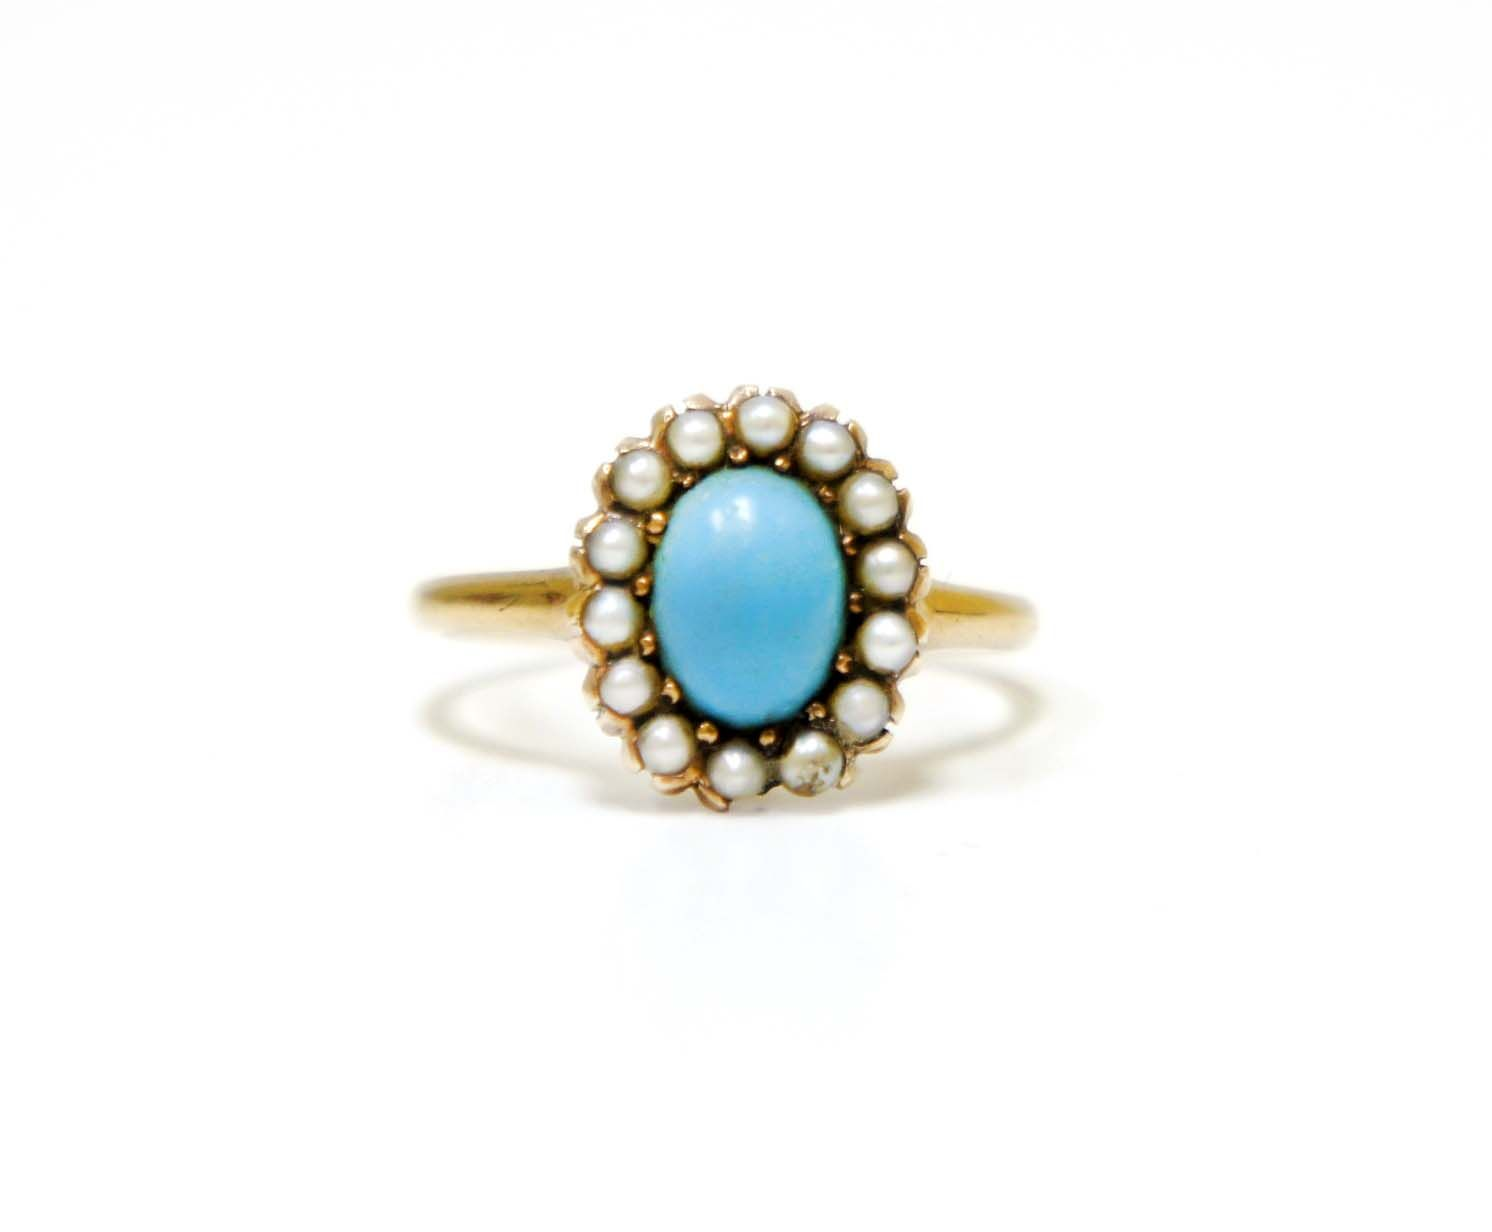 Explore Turquoise Wedding Rings And More!